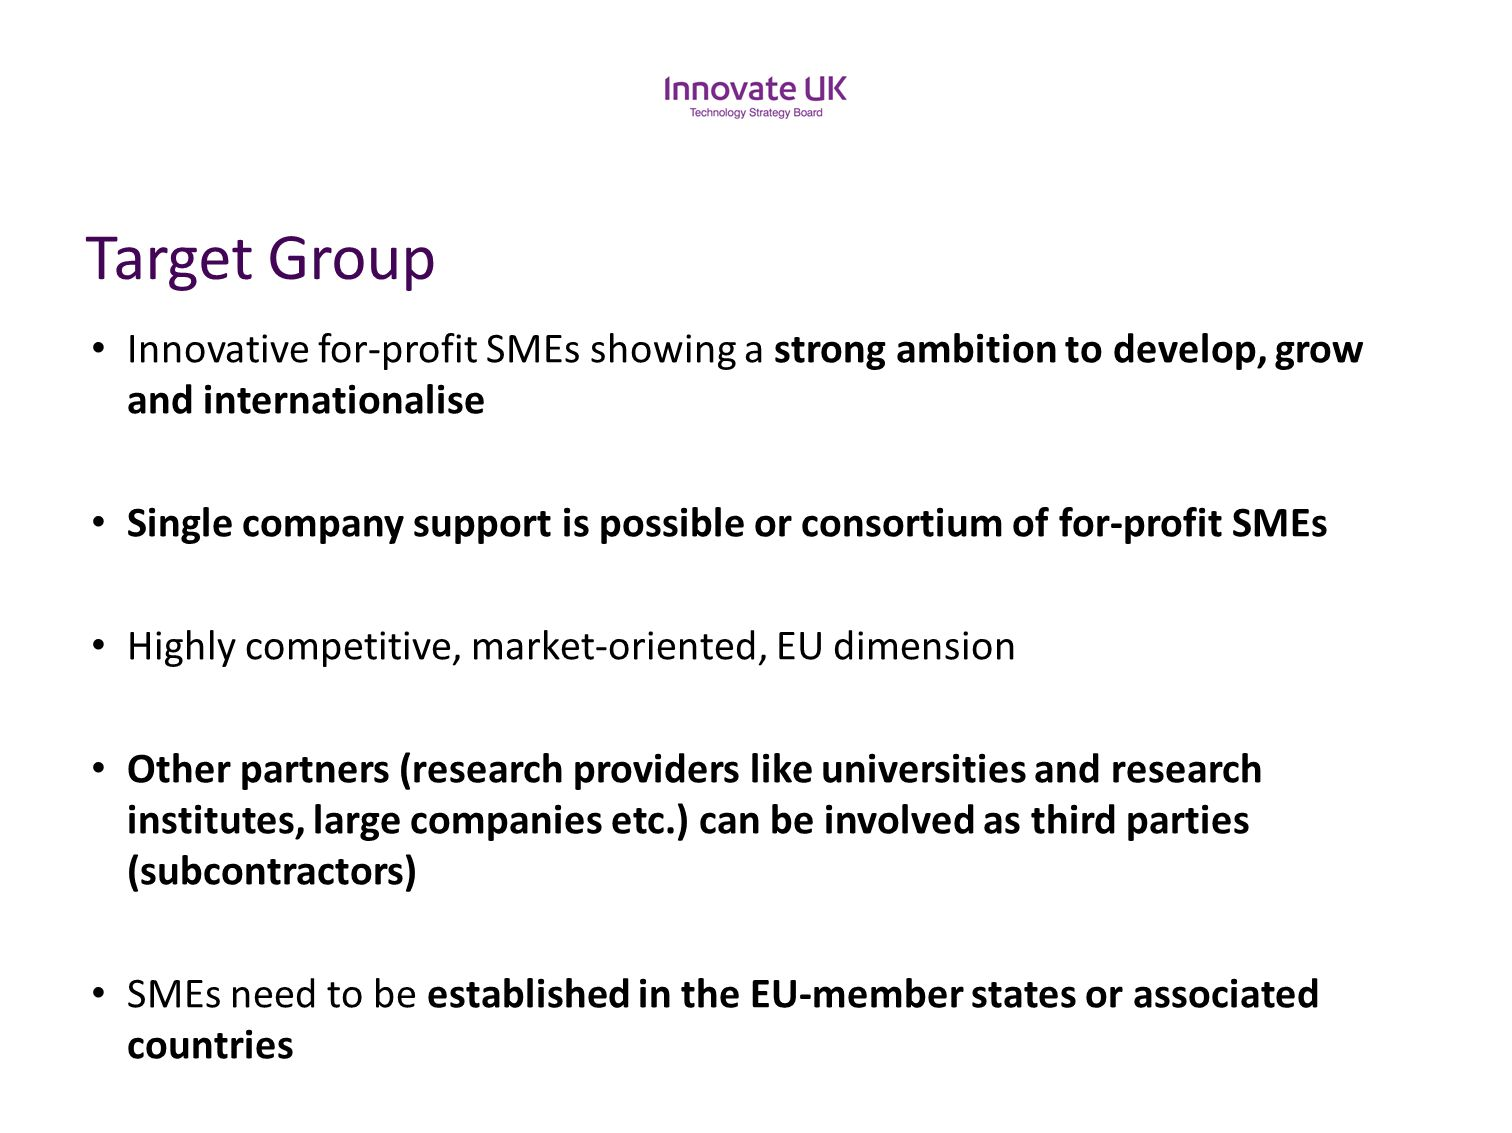 Target Group Innovative for-profit SMEs showing a strong ambition to develop, grow and internationalise.